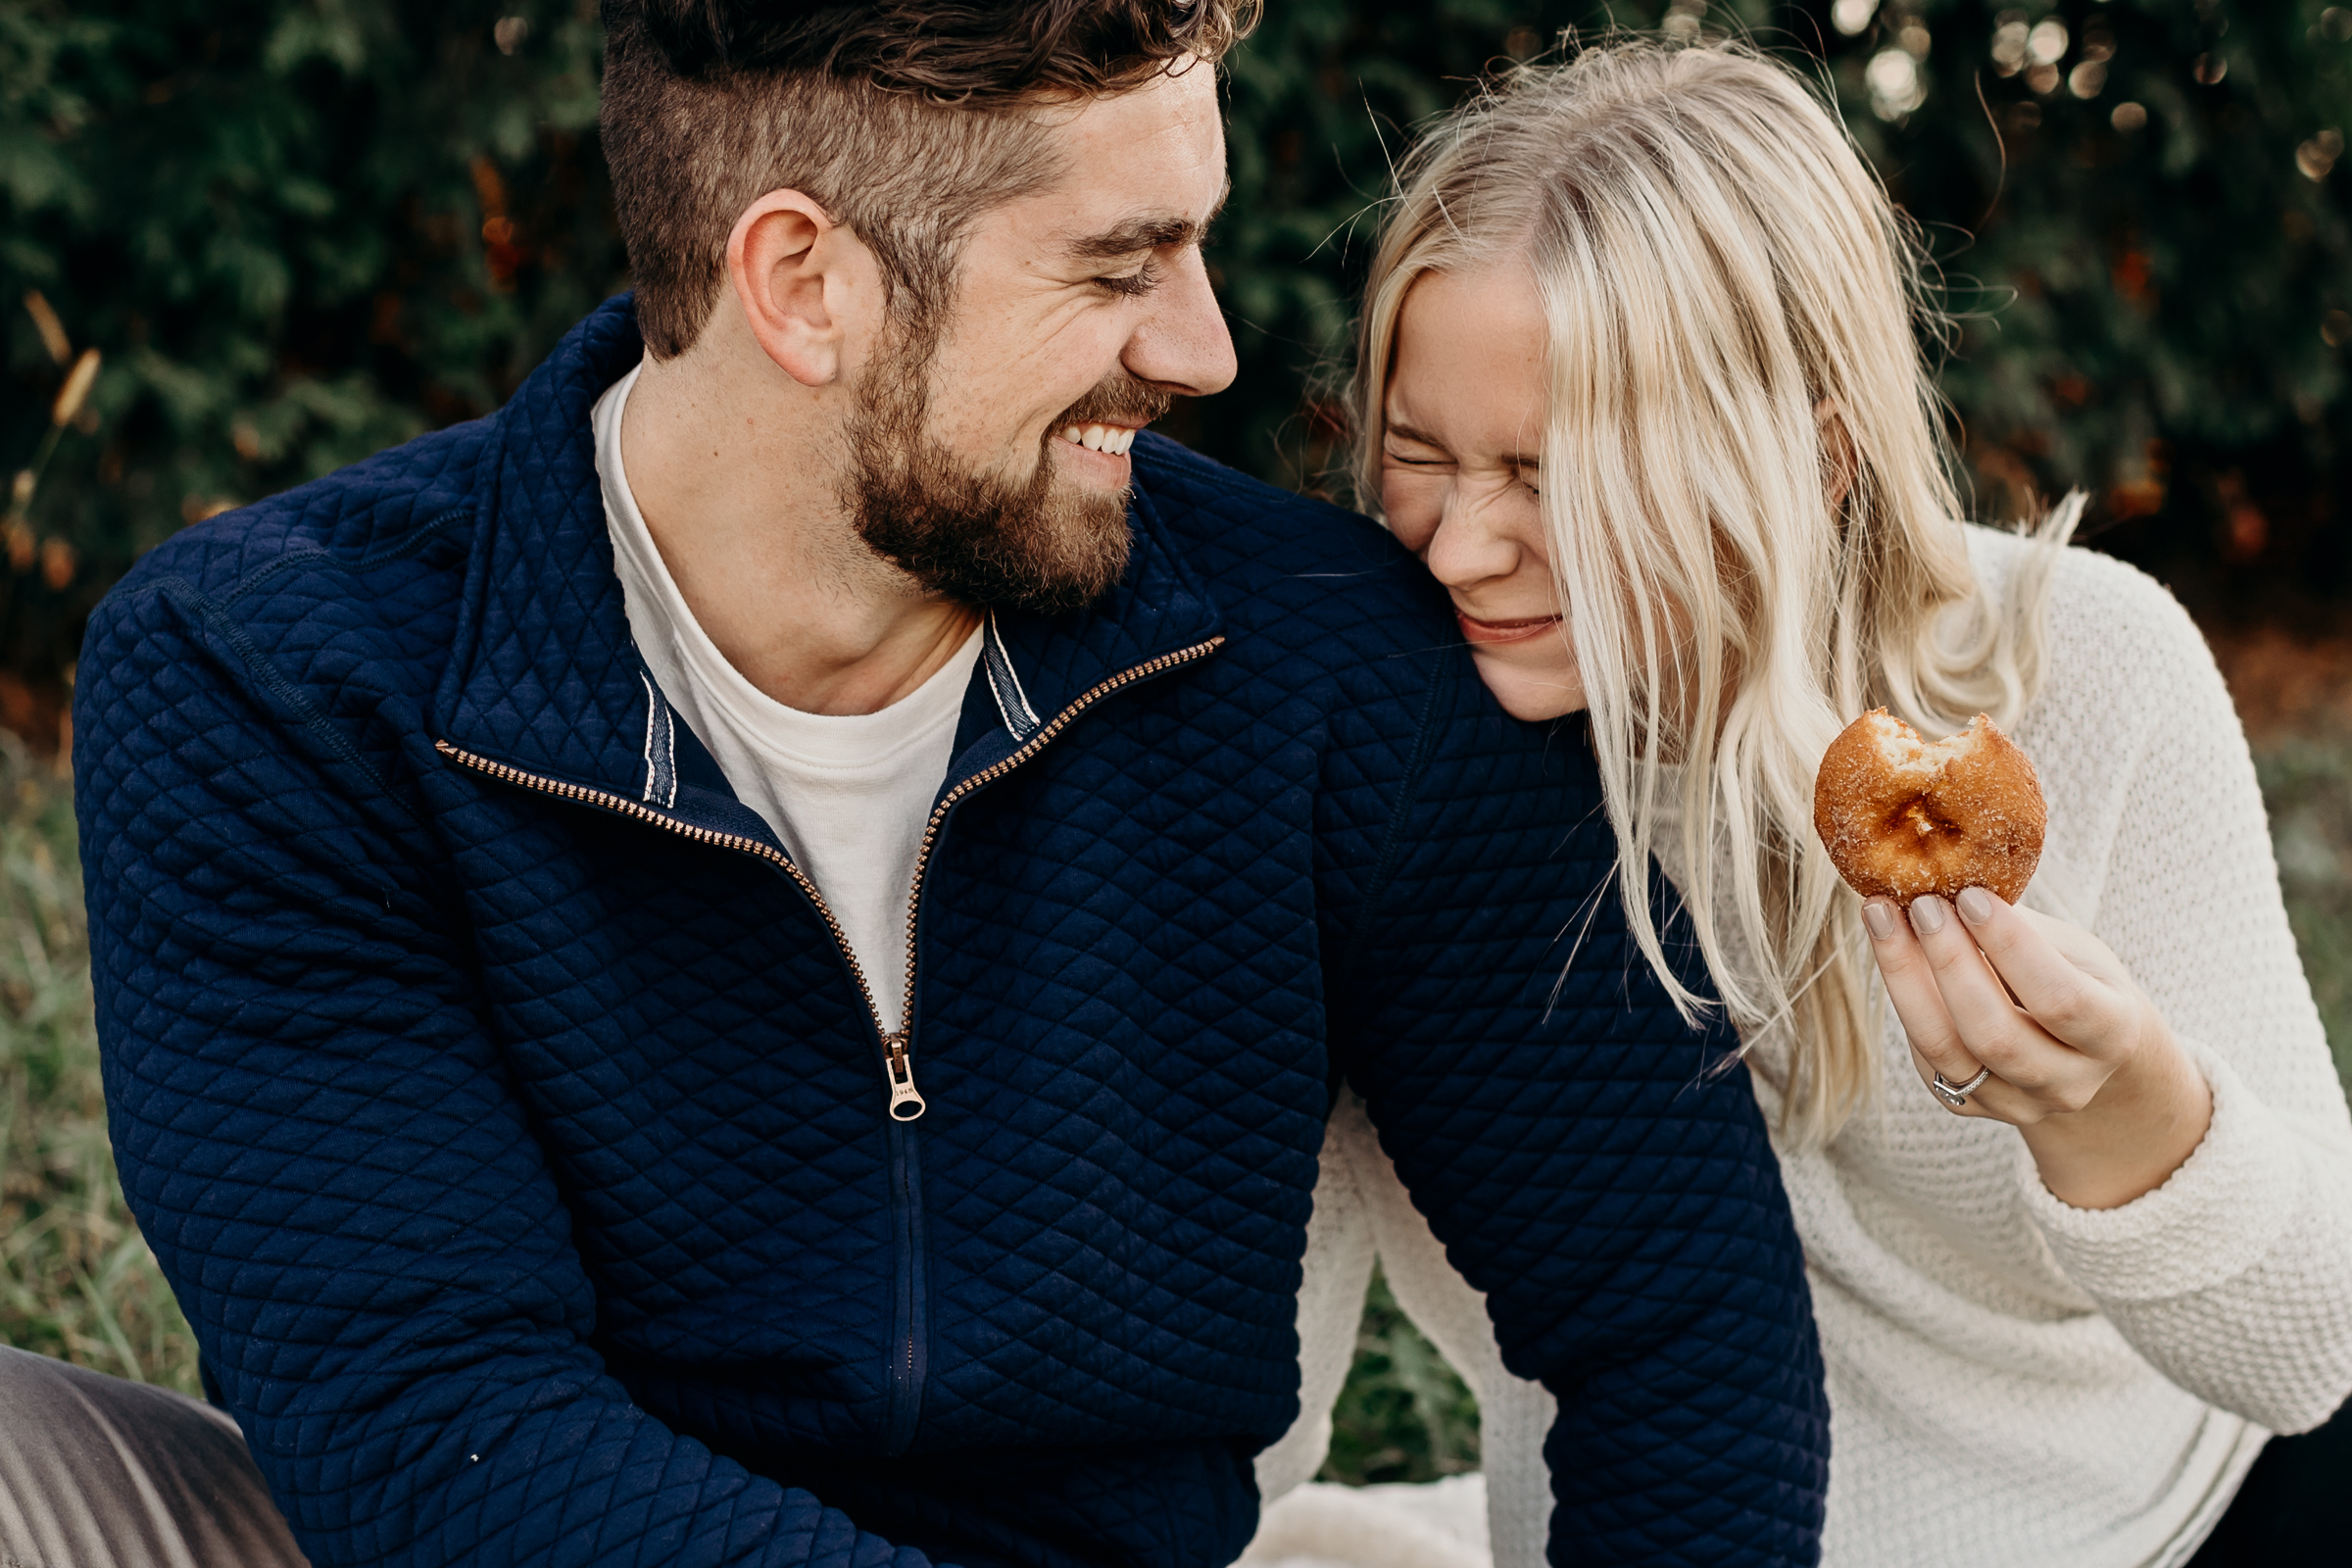 Woman laughs as she eats a donut with her fiancé.